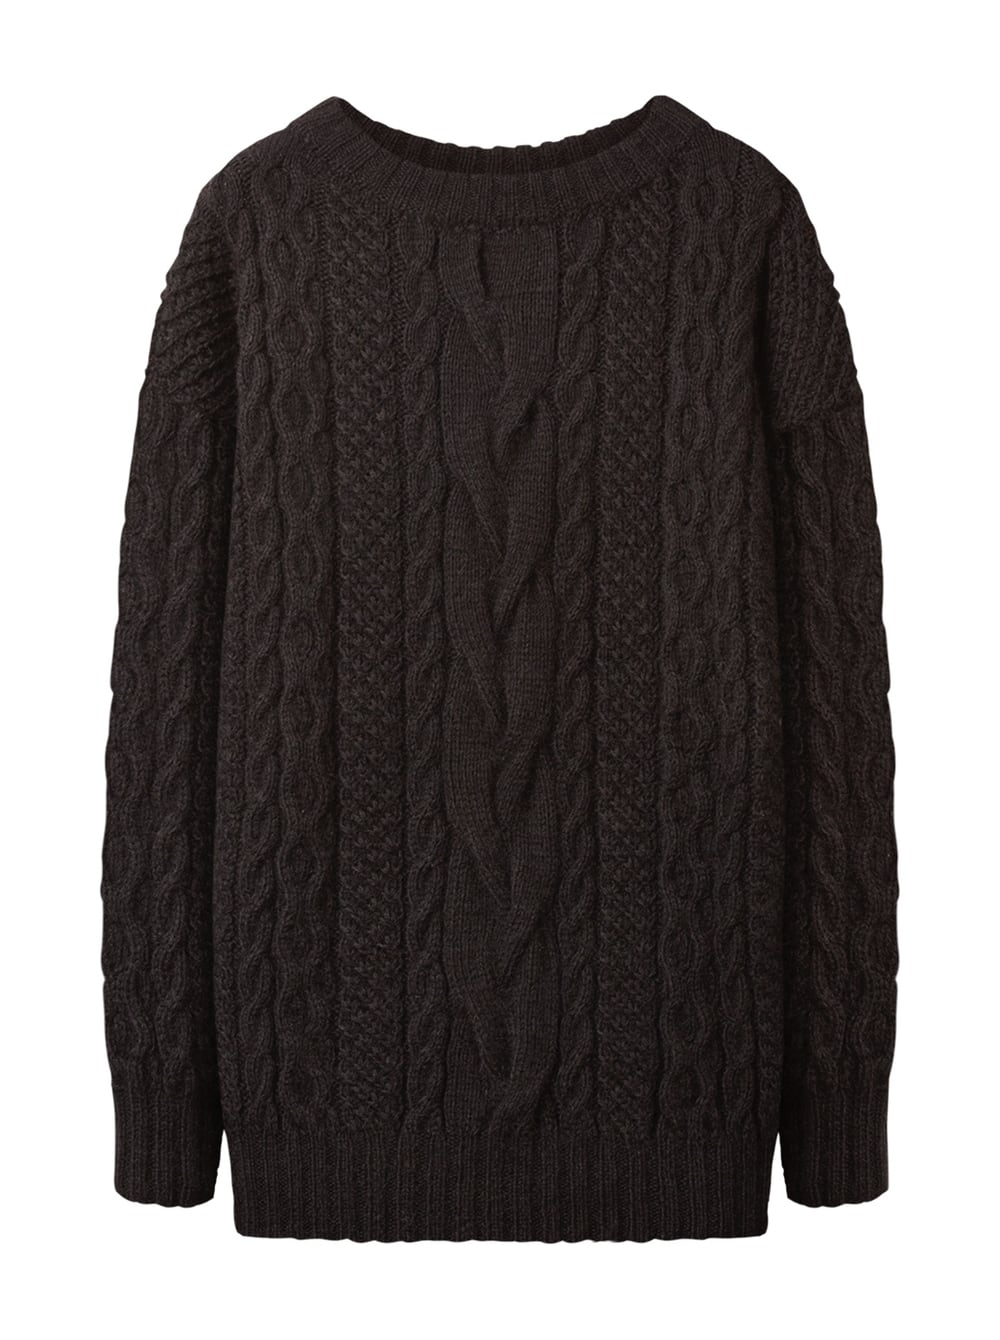 картинка CABLE KNIT SWEATER BLACK от магазина Maltseva Style